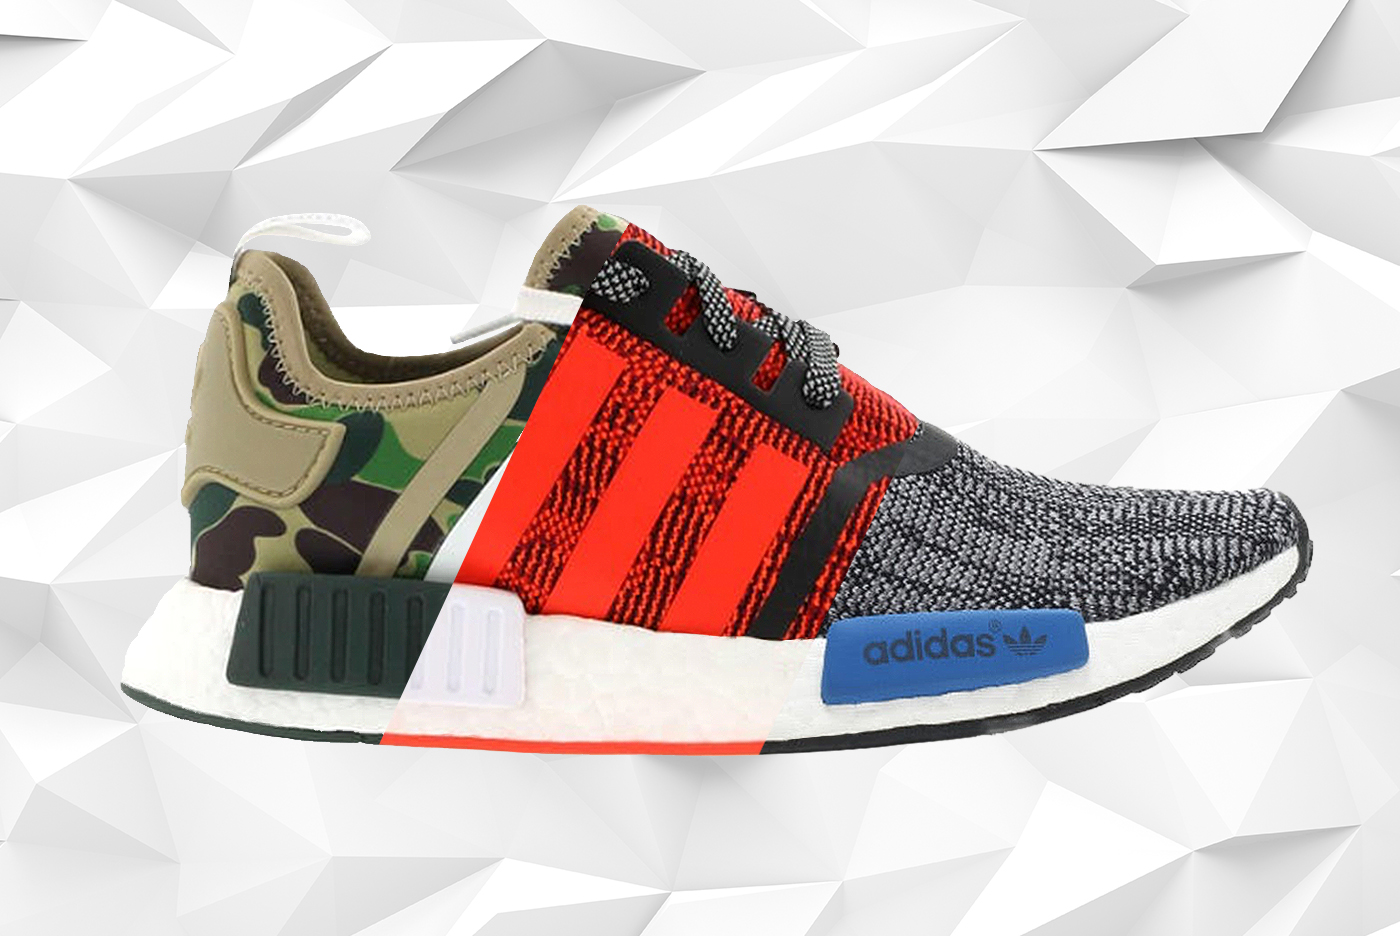 8a6190d71385 The 10 Most Expensive adidas NMD Sneakers - StockX News